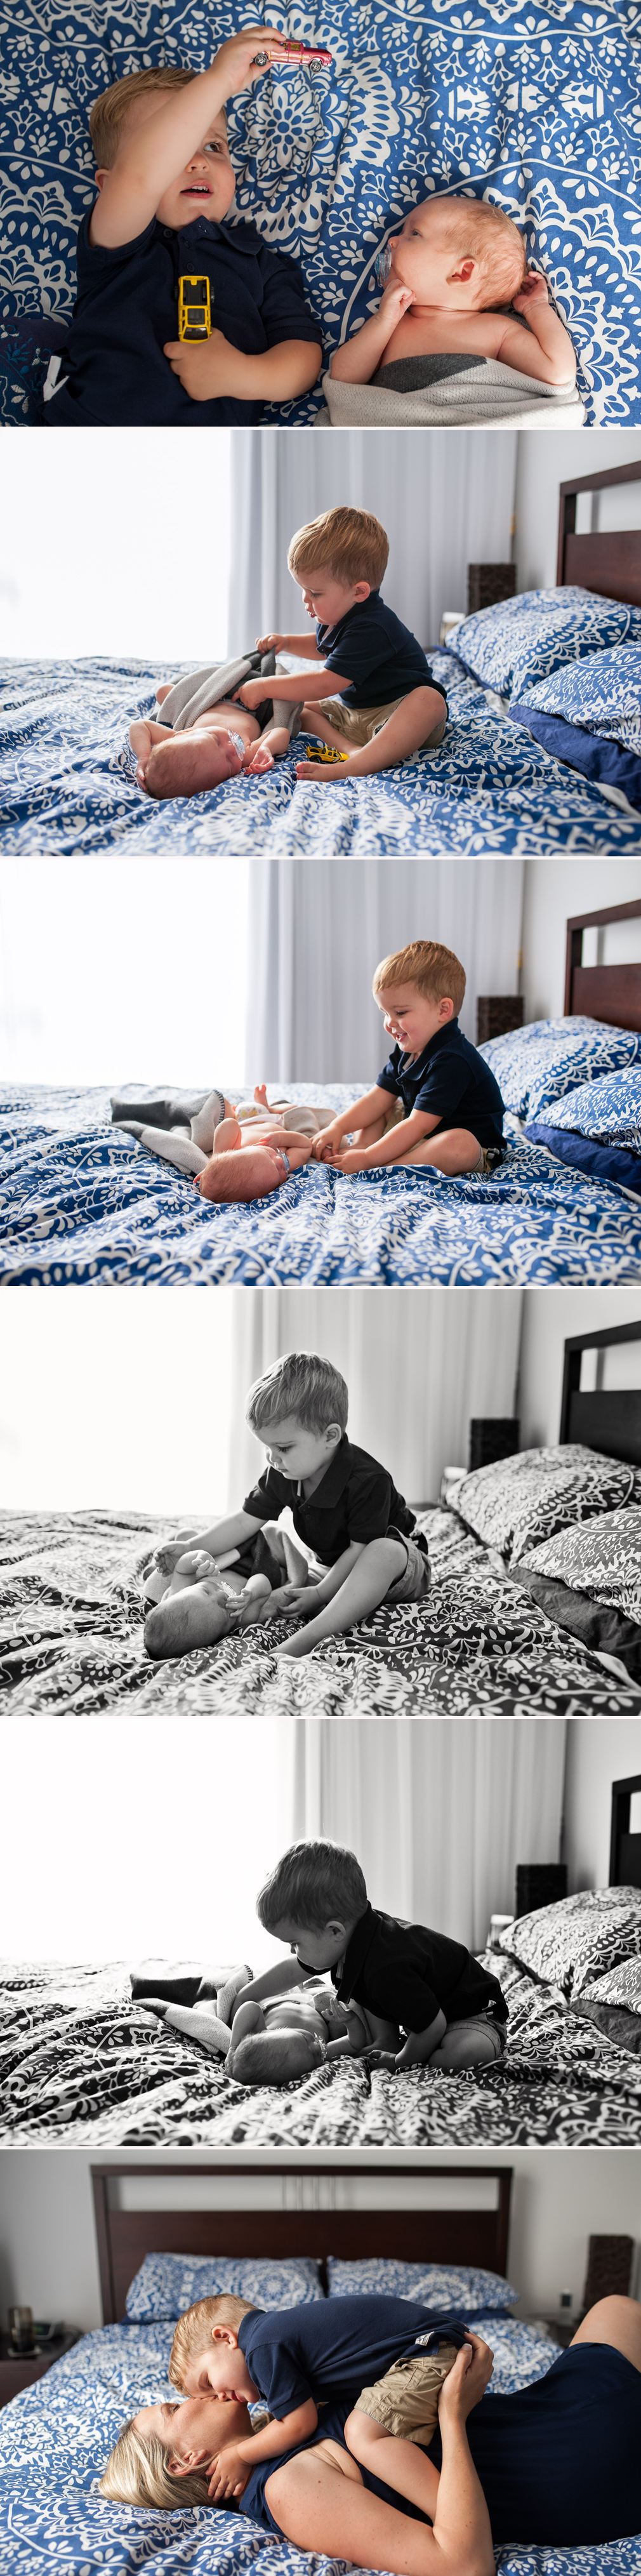 Newborn-baby-boy-at-home-lifestyle-photography-7